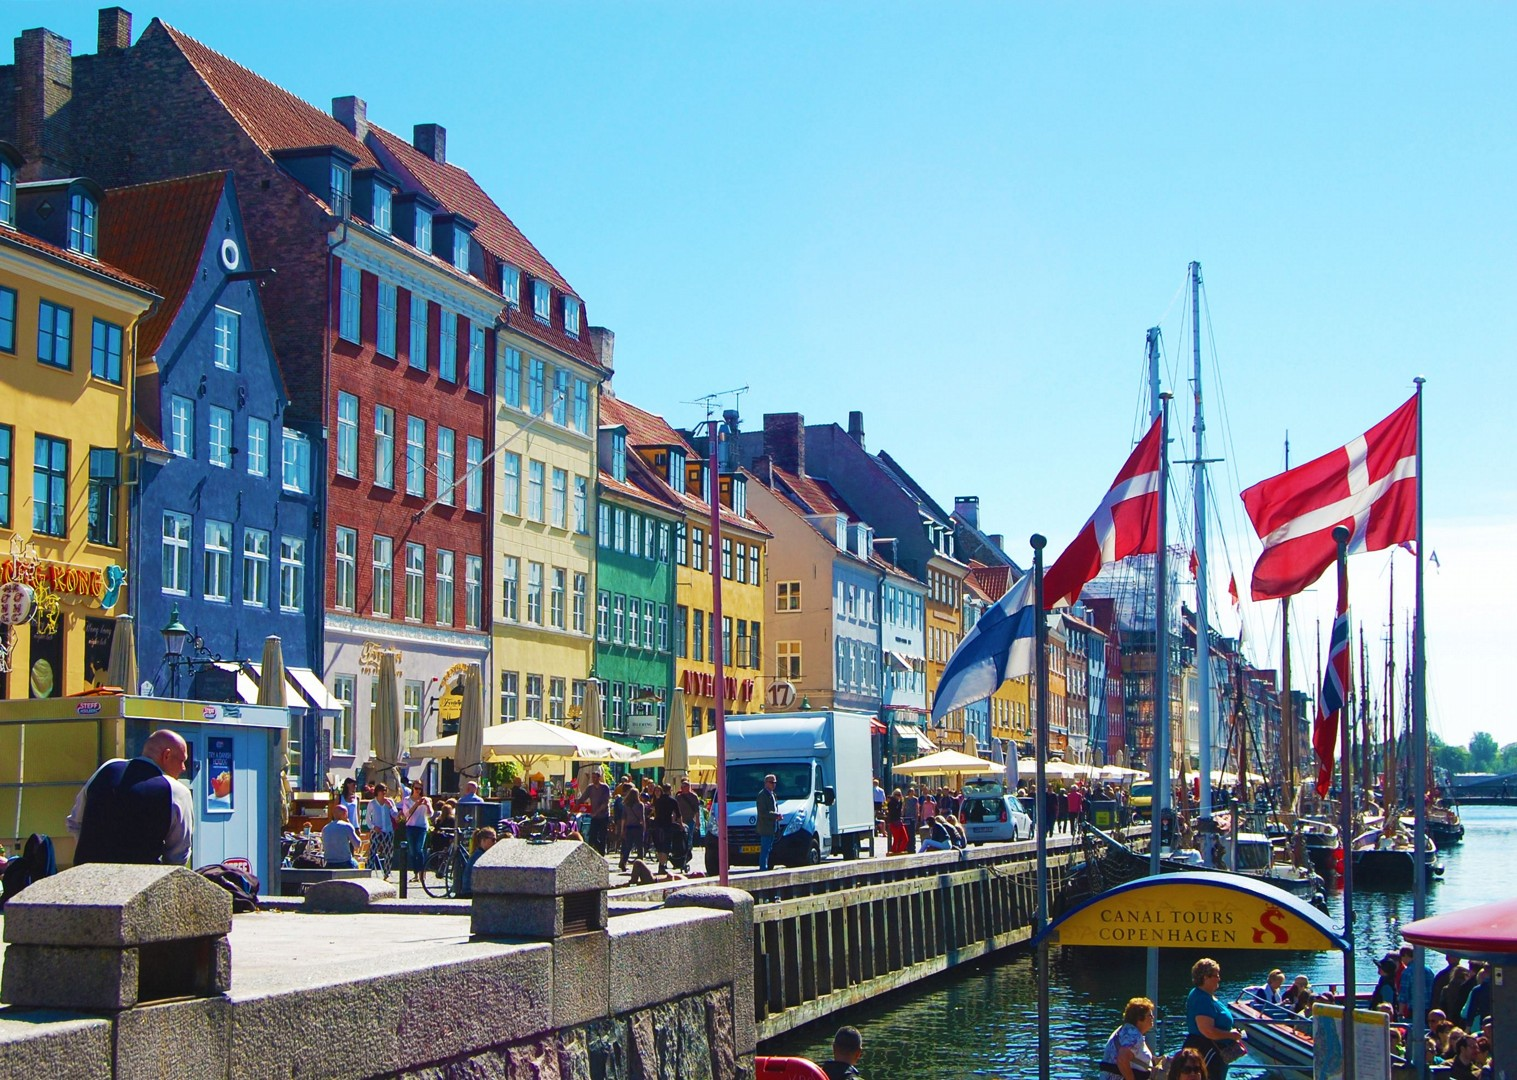 copenhagen-nyhavn-harbour-houses-leisure-biking-skedaddle.jpg - Denmark - Coast, Castles and Copenhagen - Self-Guided Leisure Cycling Holiday - Leisure Cycling